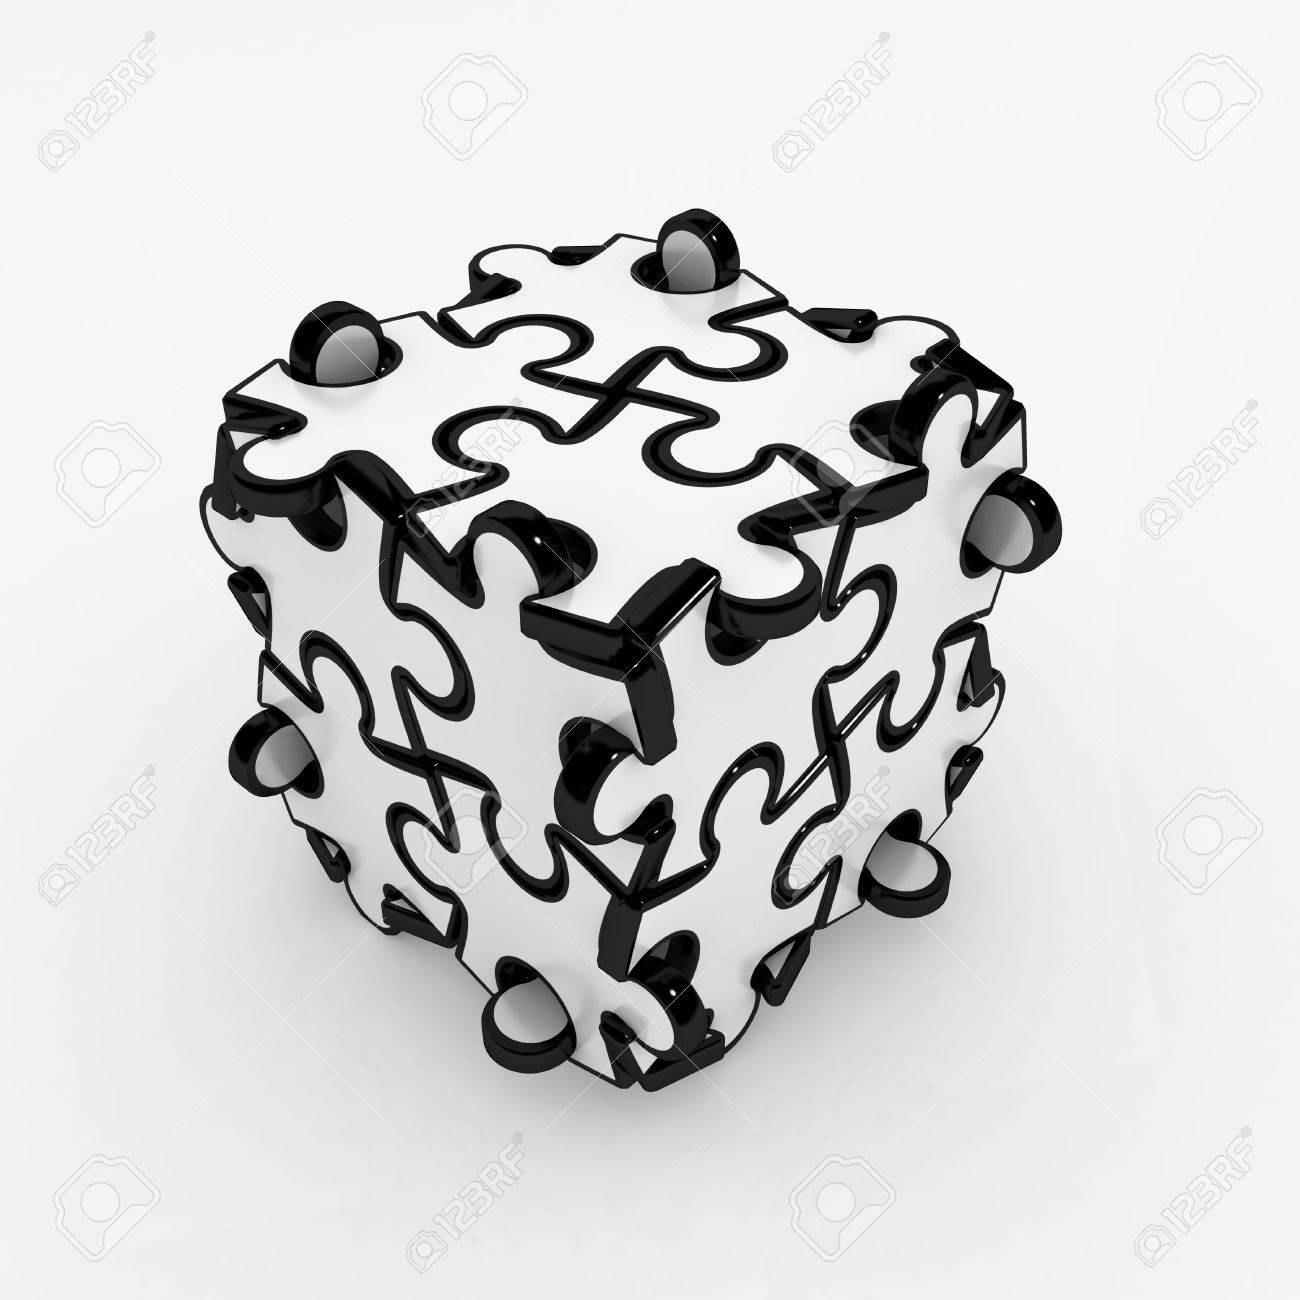 Black And White 3d Jigsaw Puzzle Piece Box Isolated Stock Photo